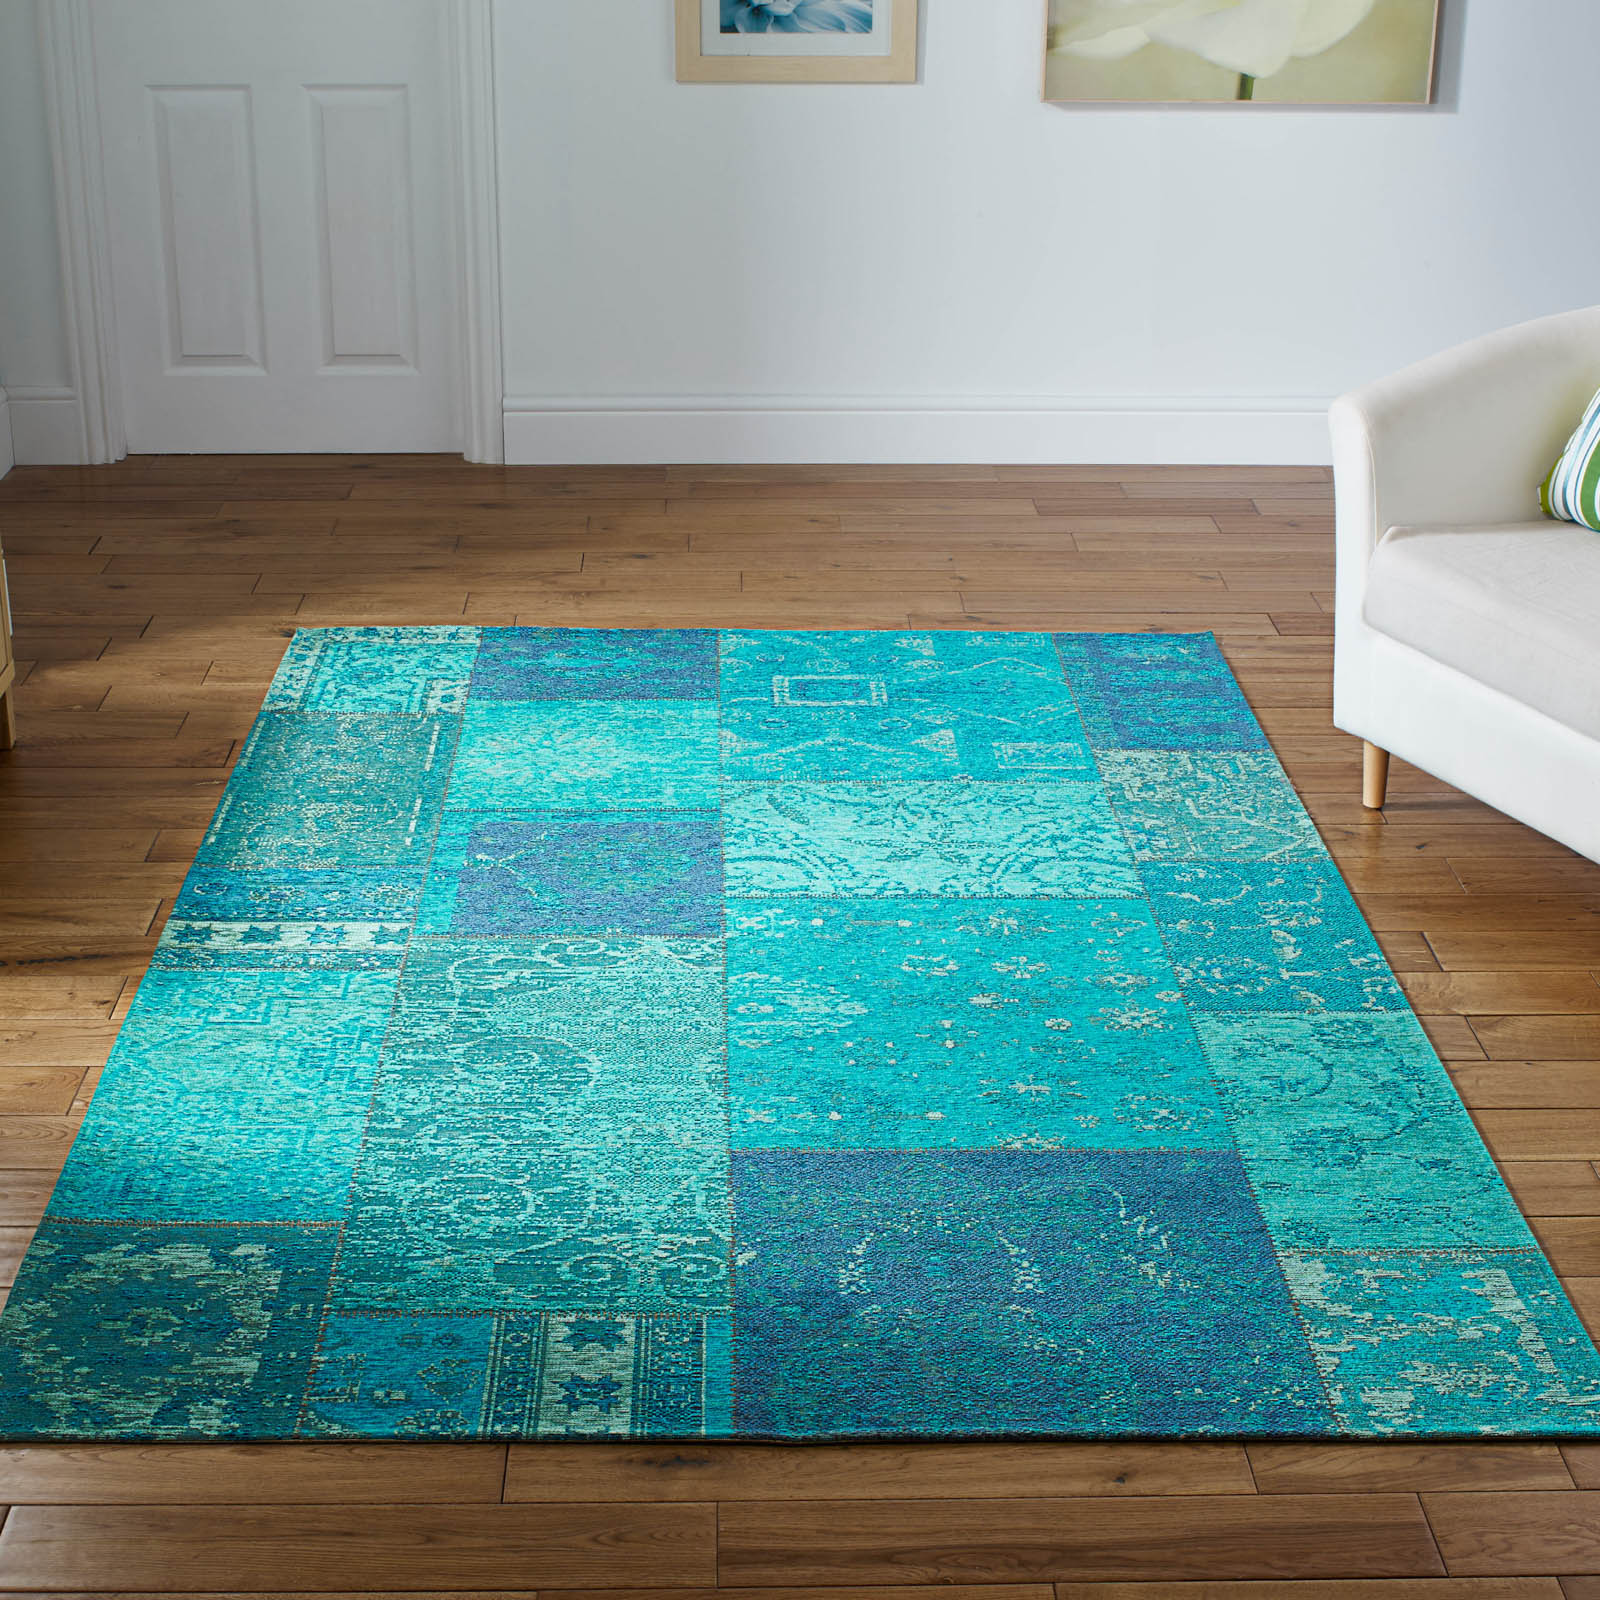 Renaissance Rugs Free UK Delivery The Rug Seller